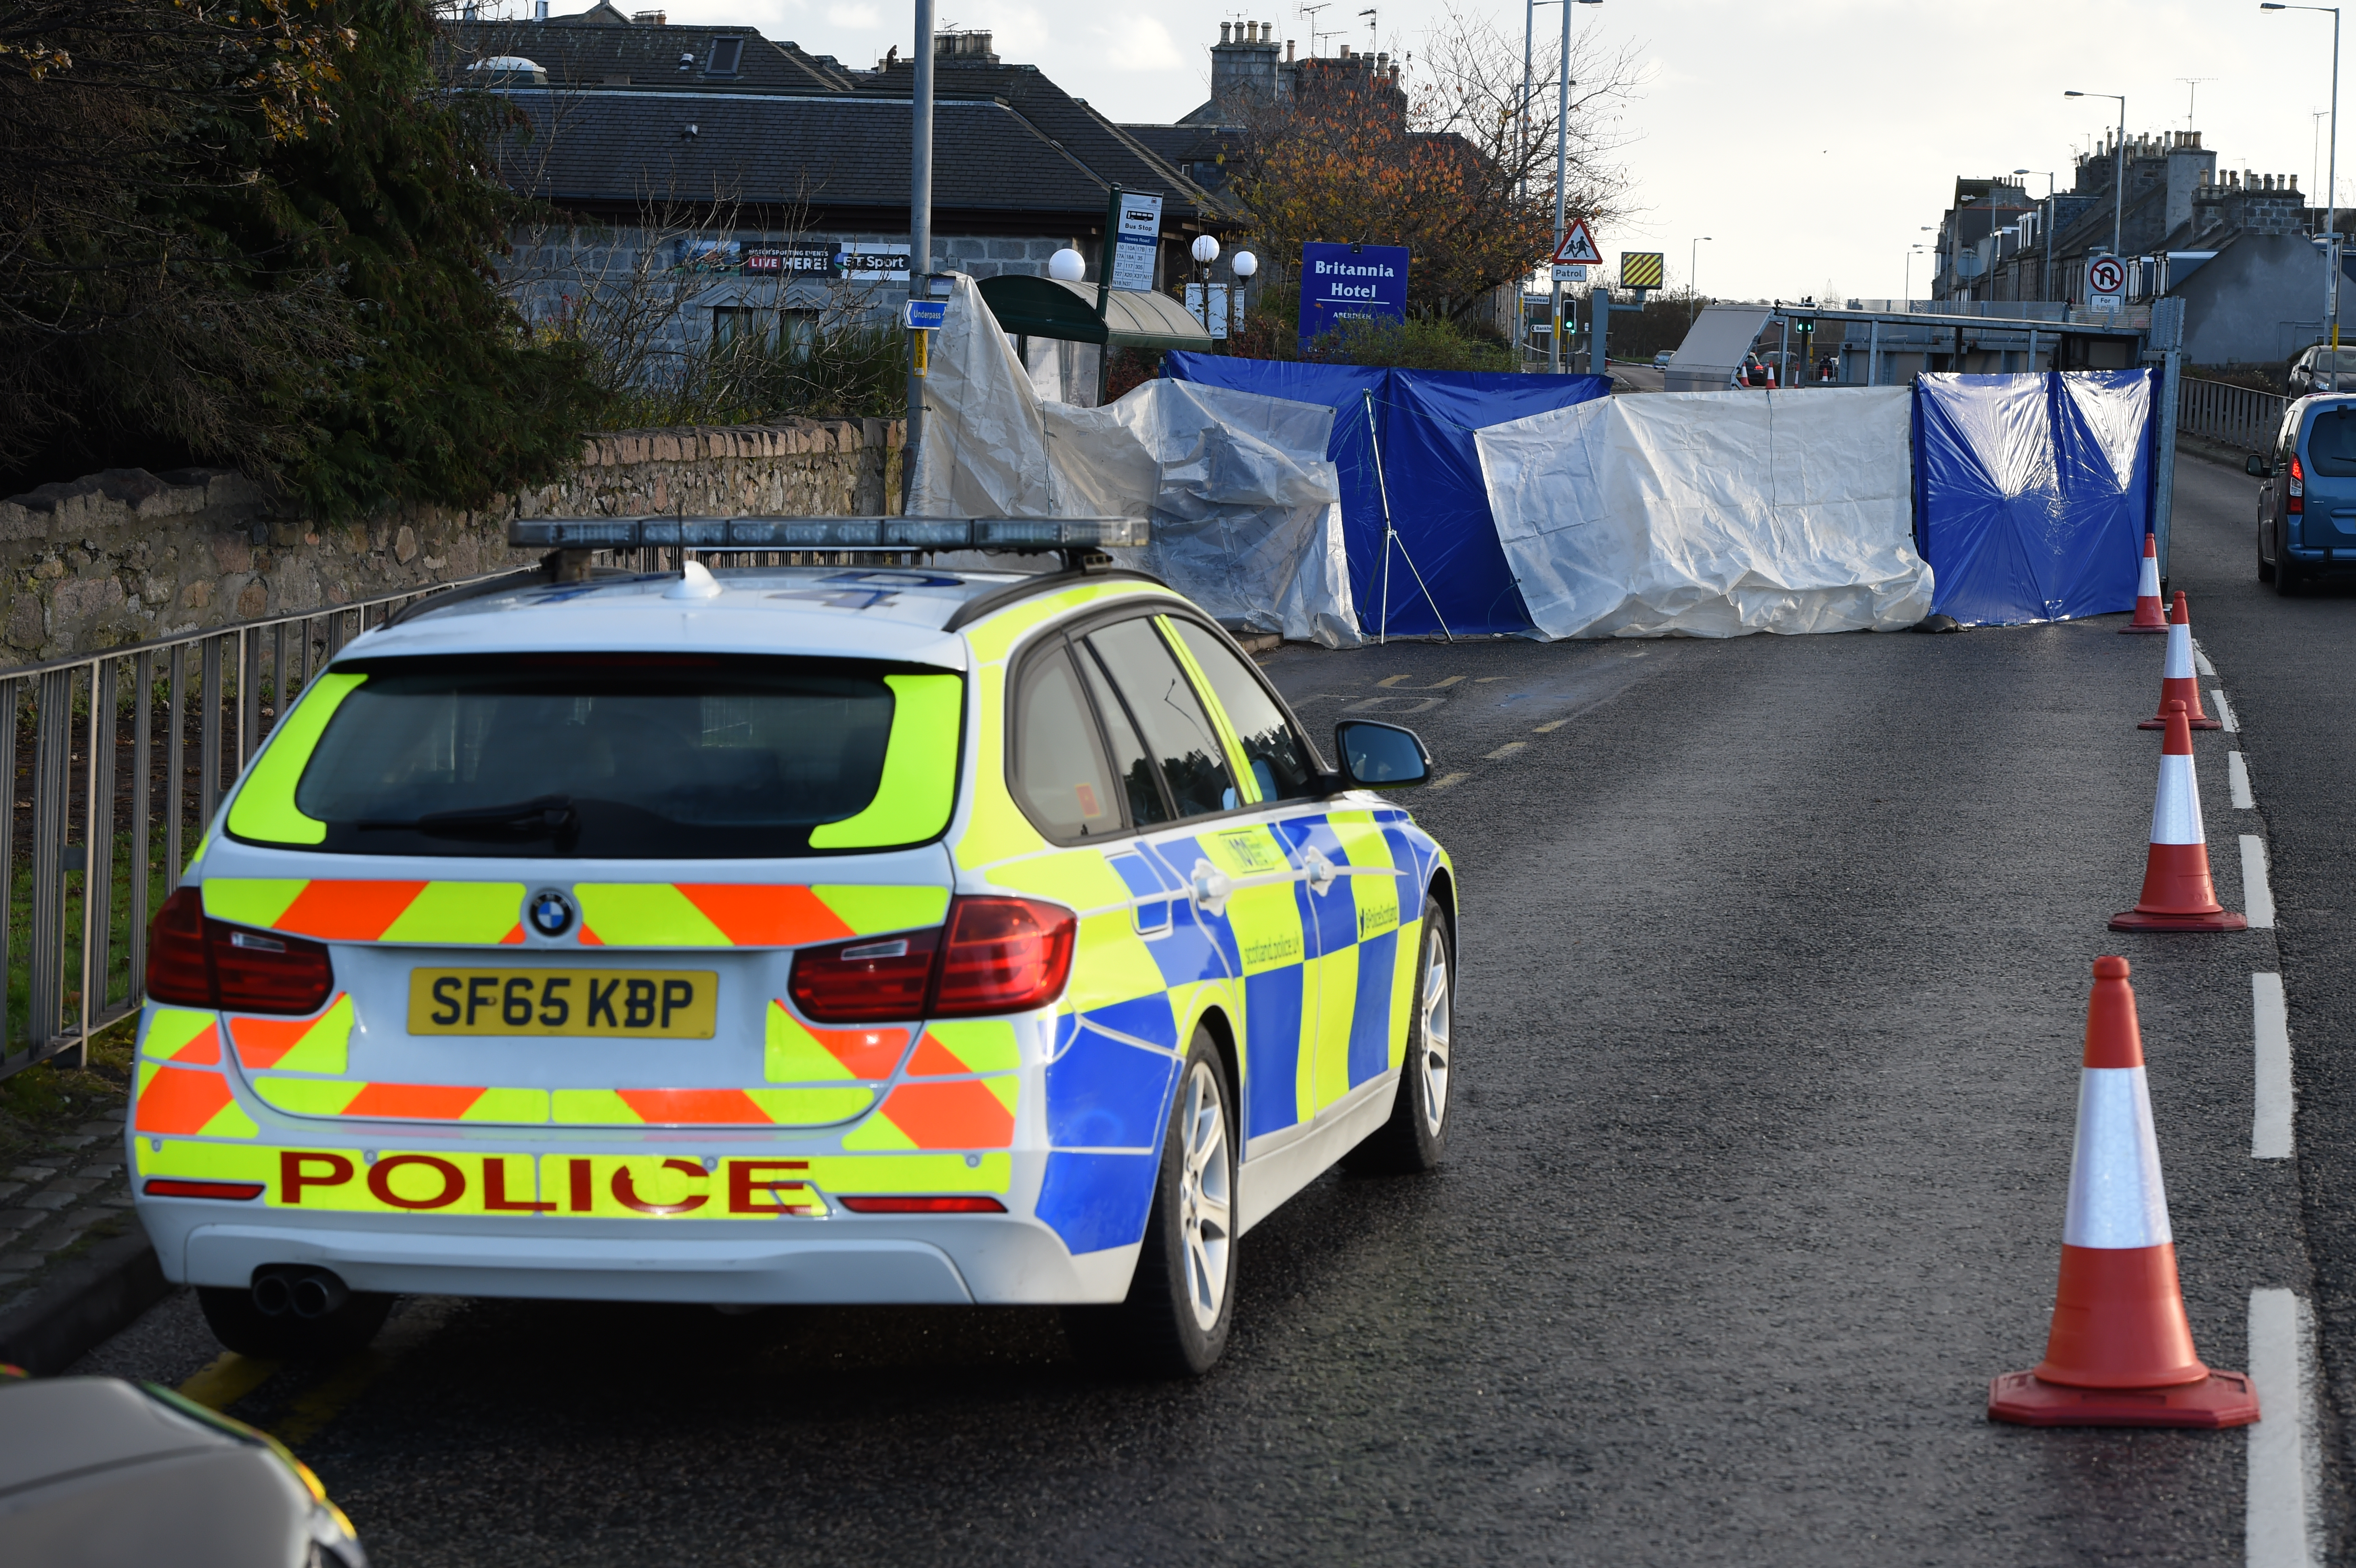 Police at the scene of the incident on Inverurie Road